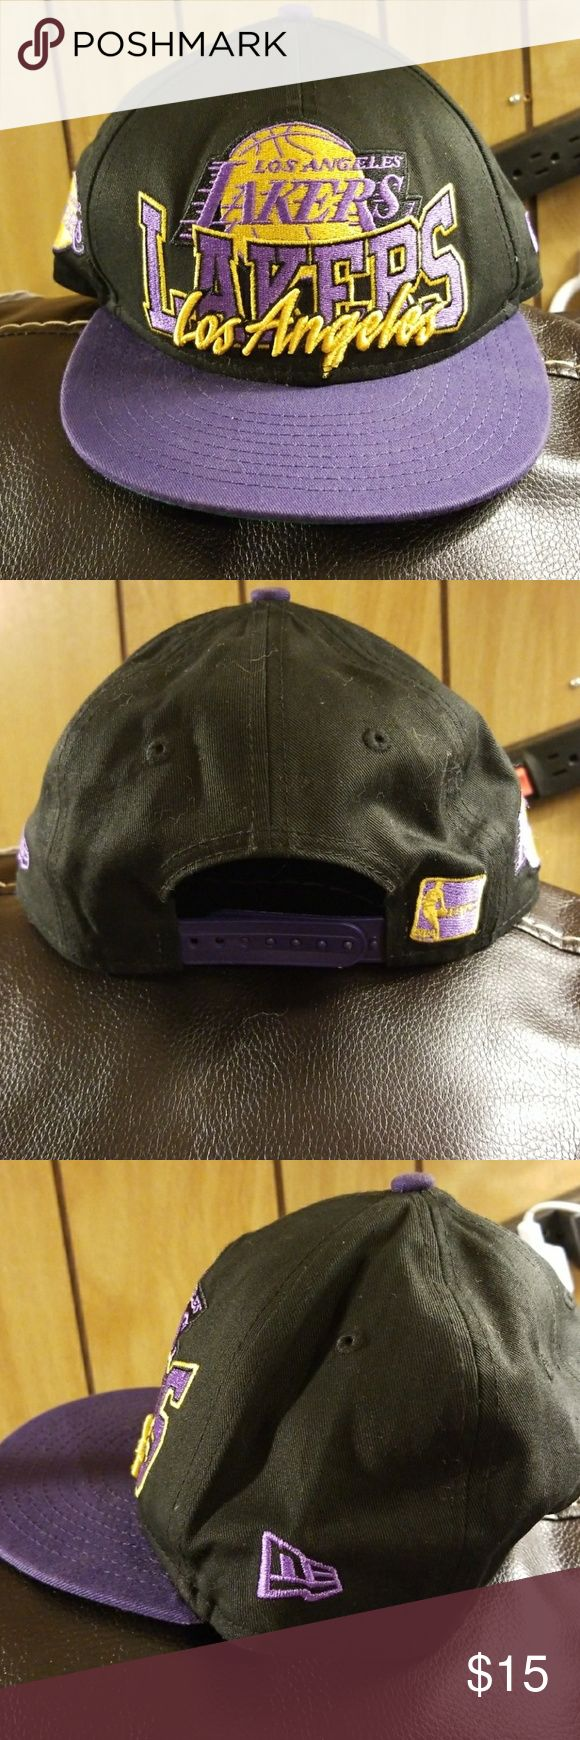 Like New Boy's LA Lakers Hat From LIDS Like new boy's LA Lakers hat from LIDS worn only 2 times.  Comes from a smoke free home. NBA Accessories Hats